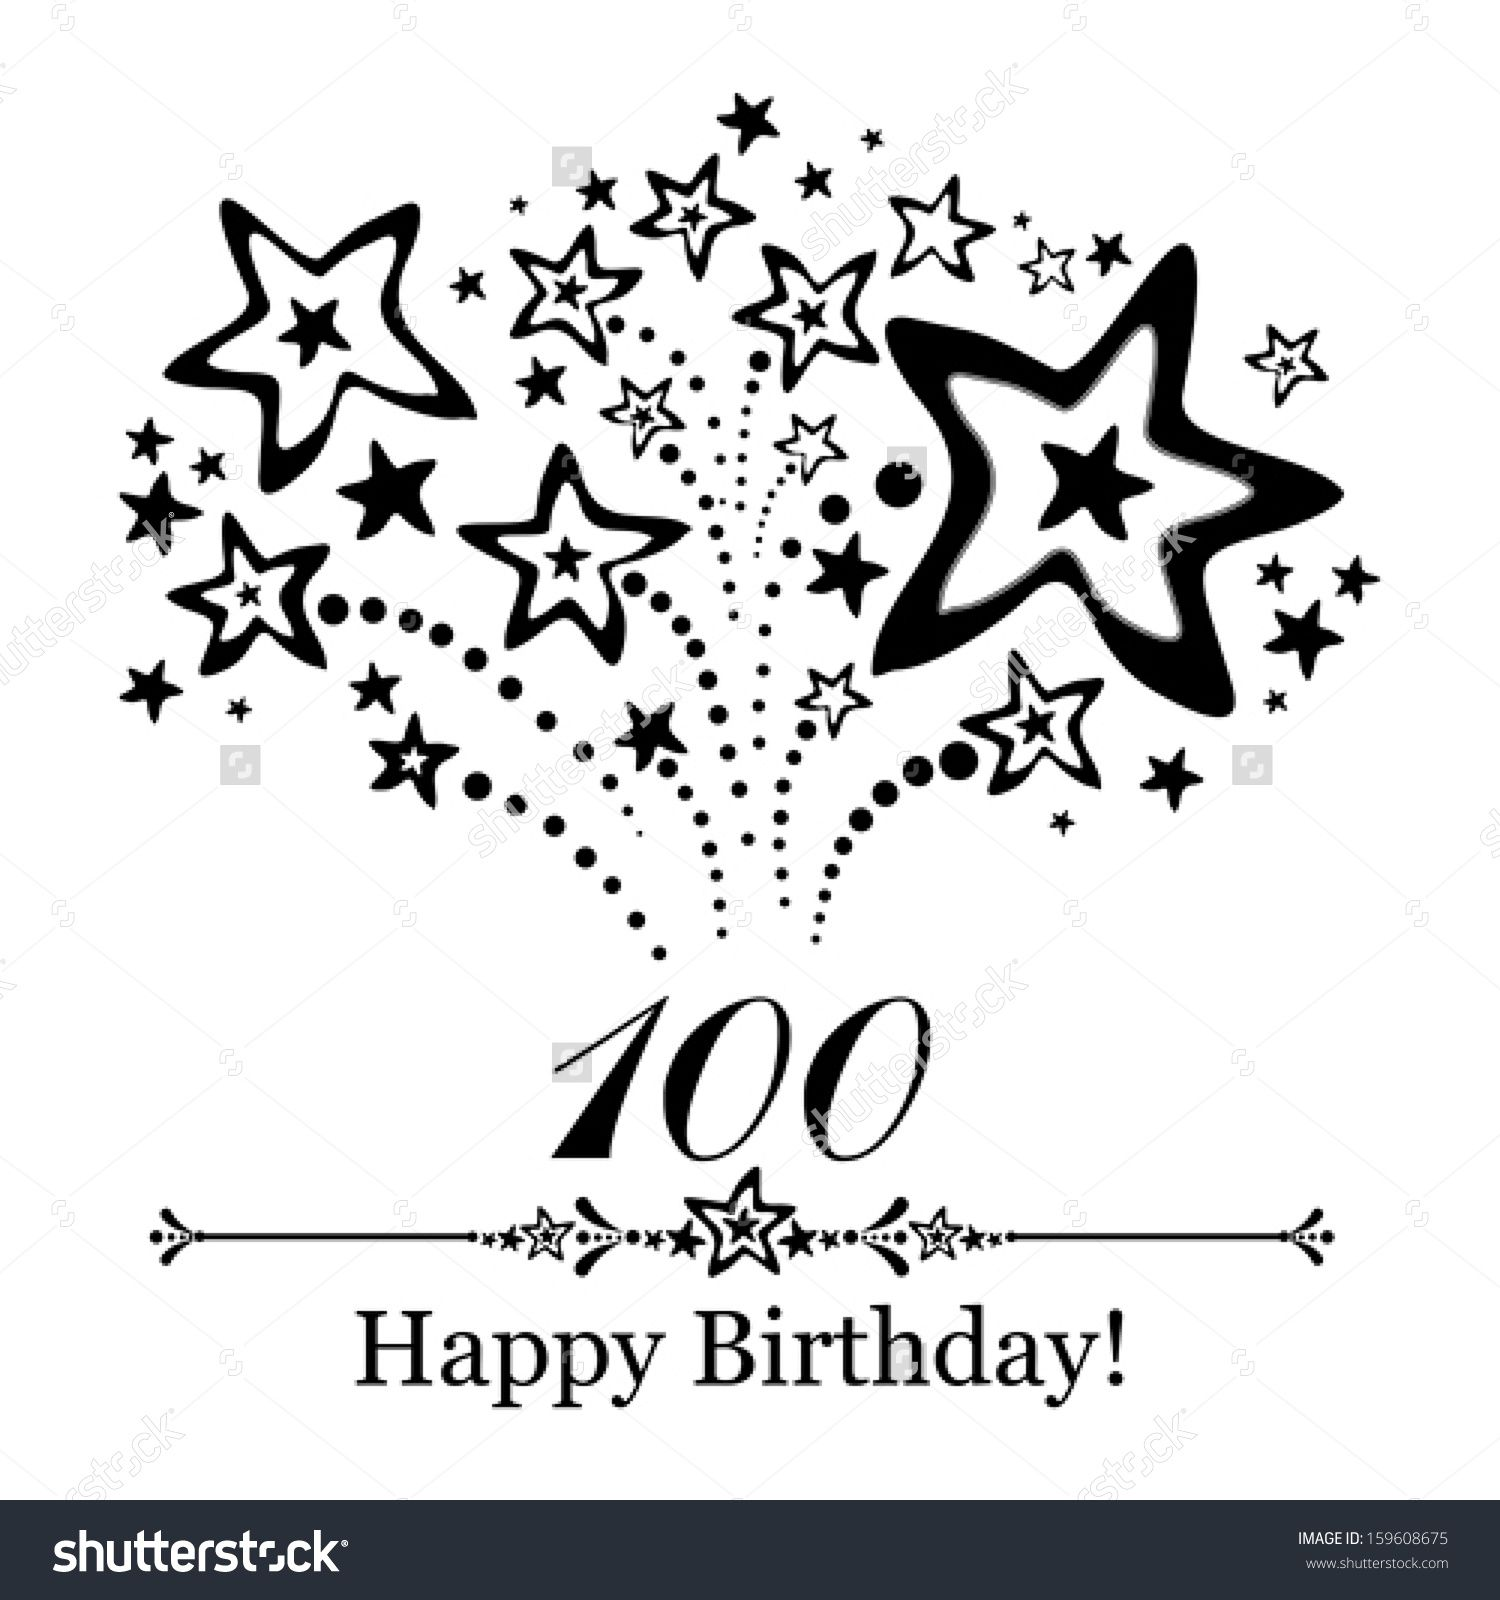 Image Result For Happy 100th Birthday CARDS